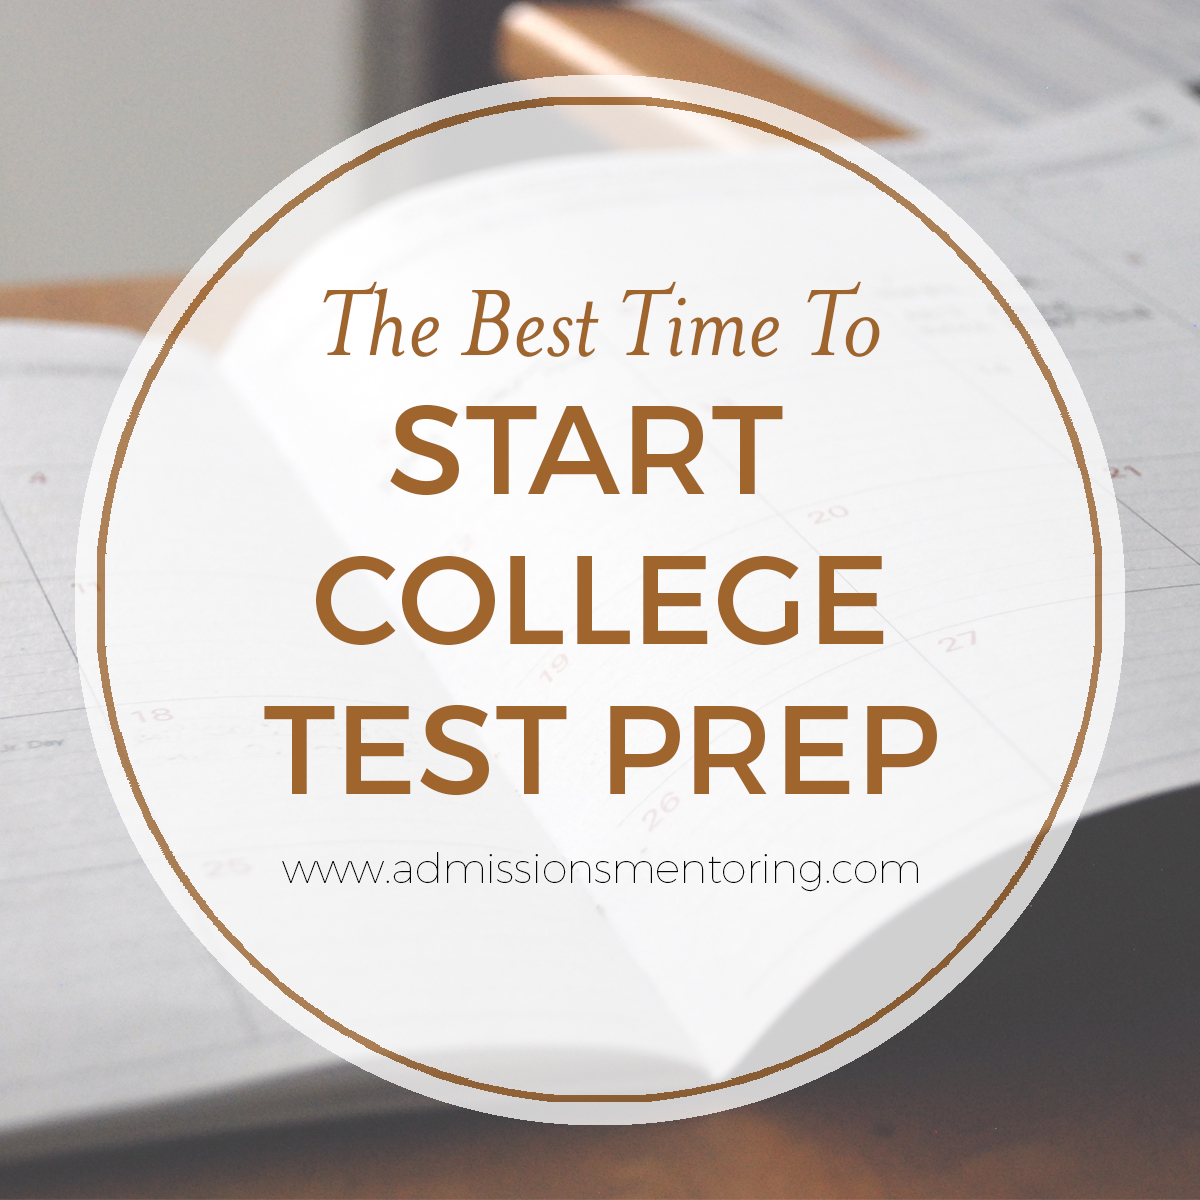 Admissions-Mentoring-When-To-Start-Test-Prep.jpg